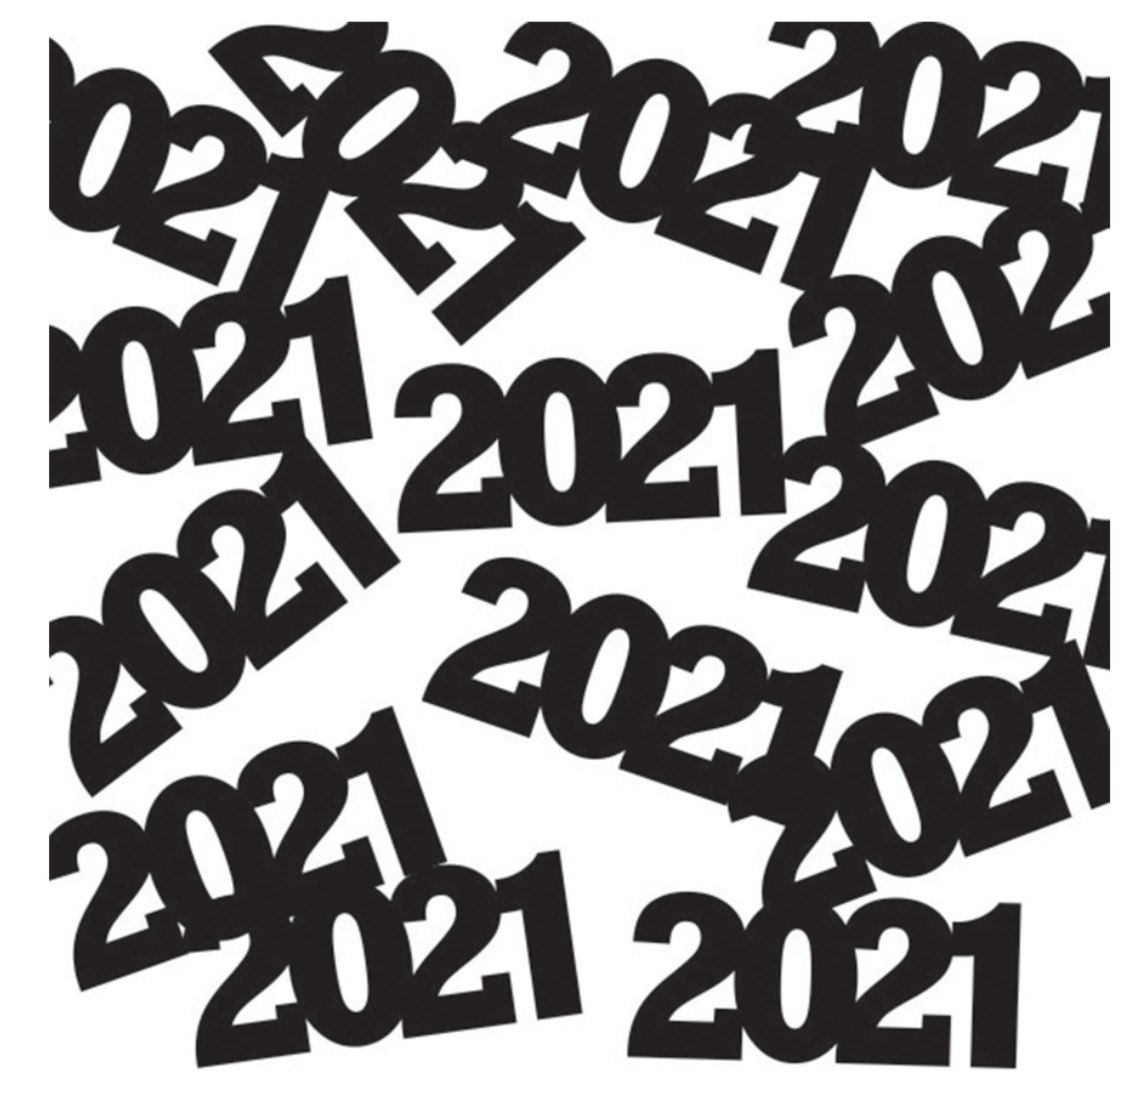 2021 Black Party Confetti